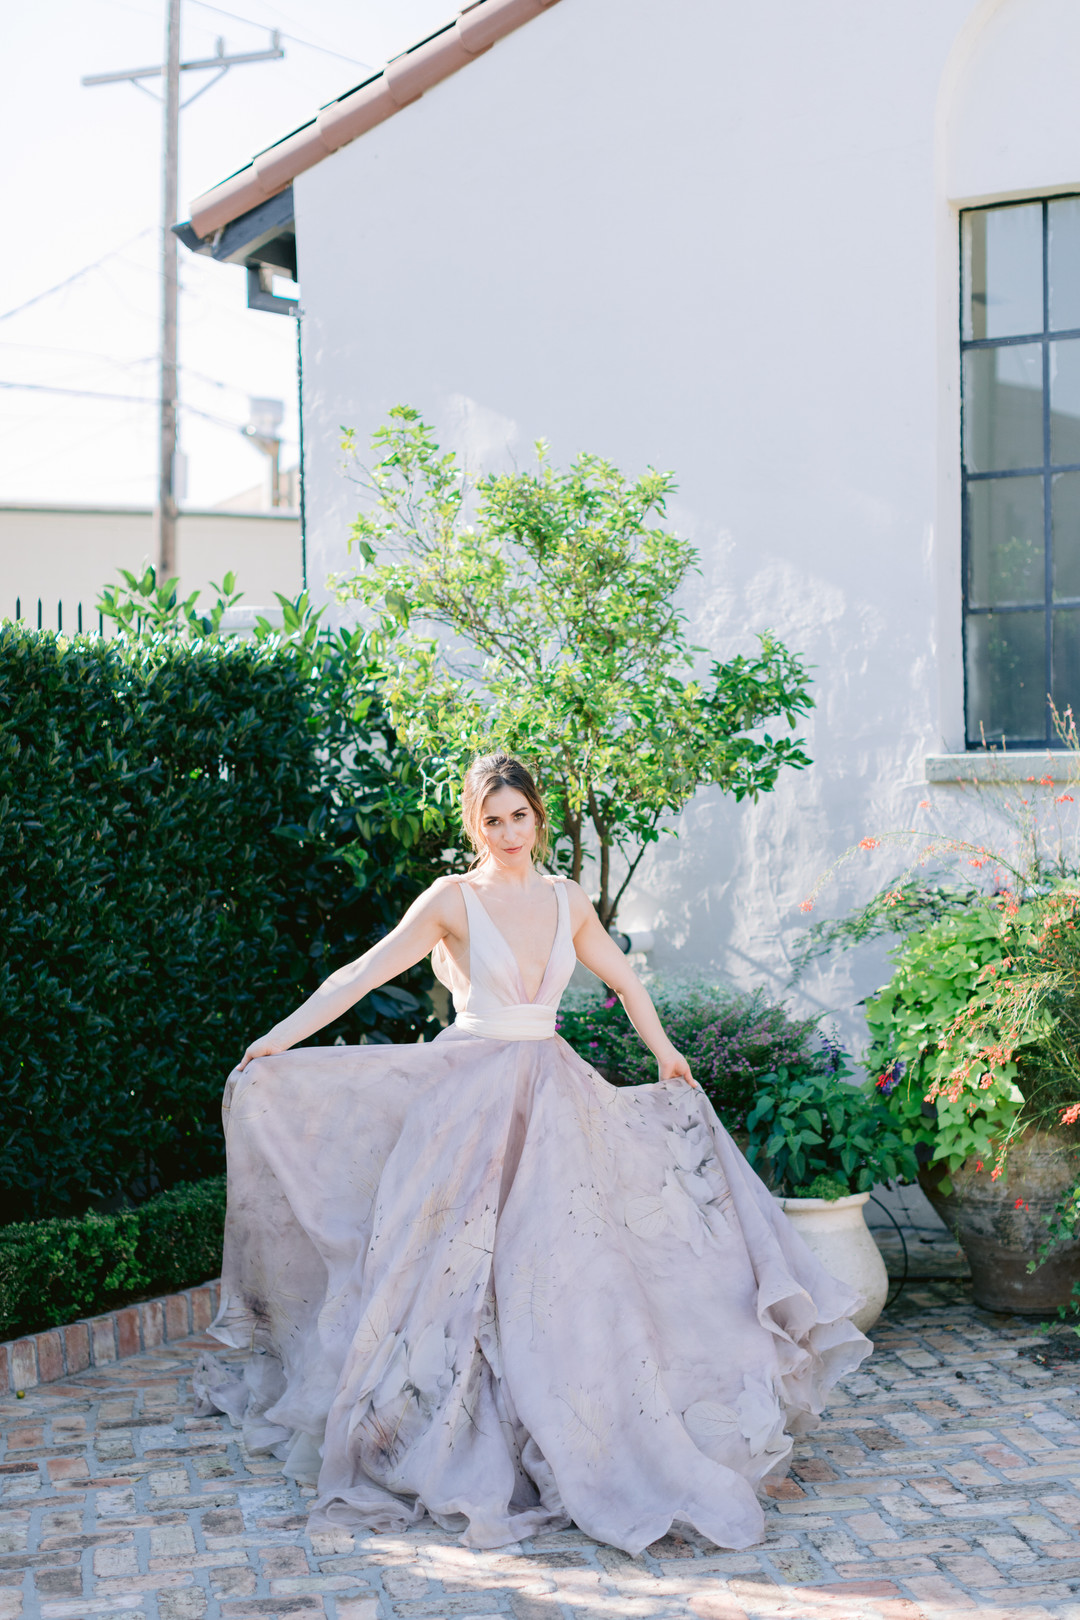 Il Mercato Wedding, New Orleans Wedding, Magazine Street Wedding, bride twirling, colorful wedding gown